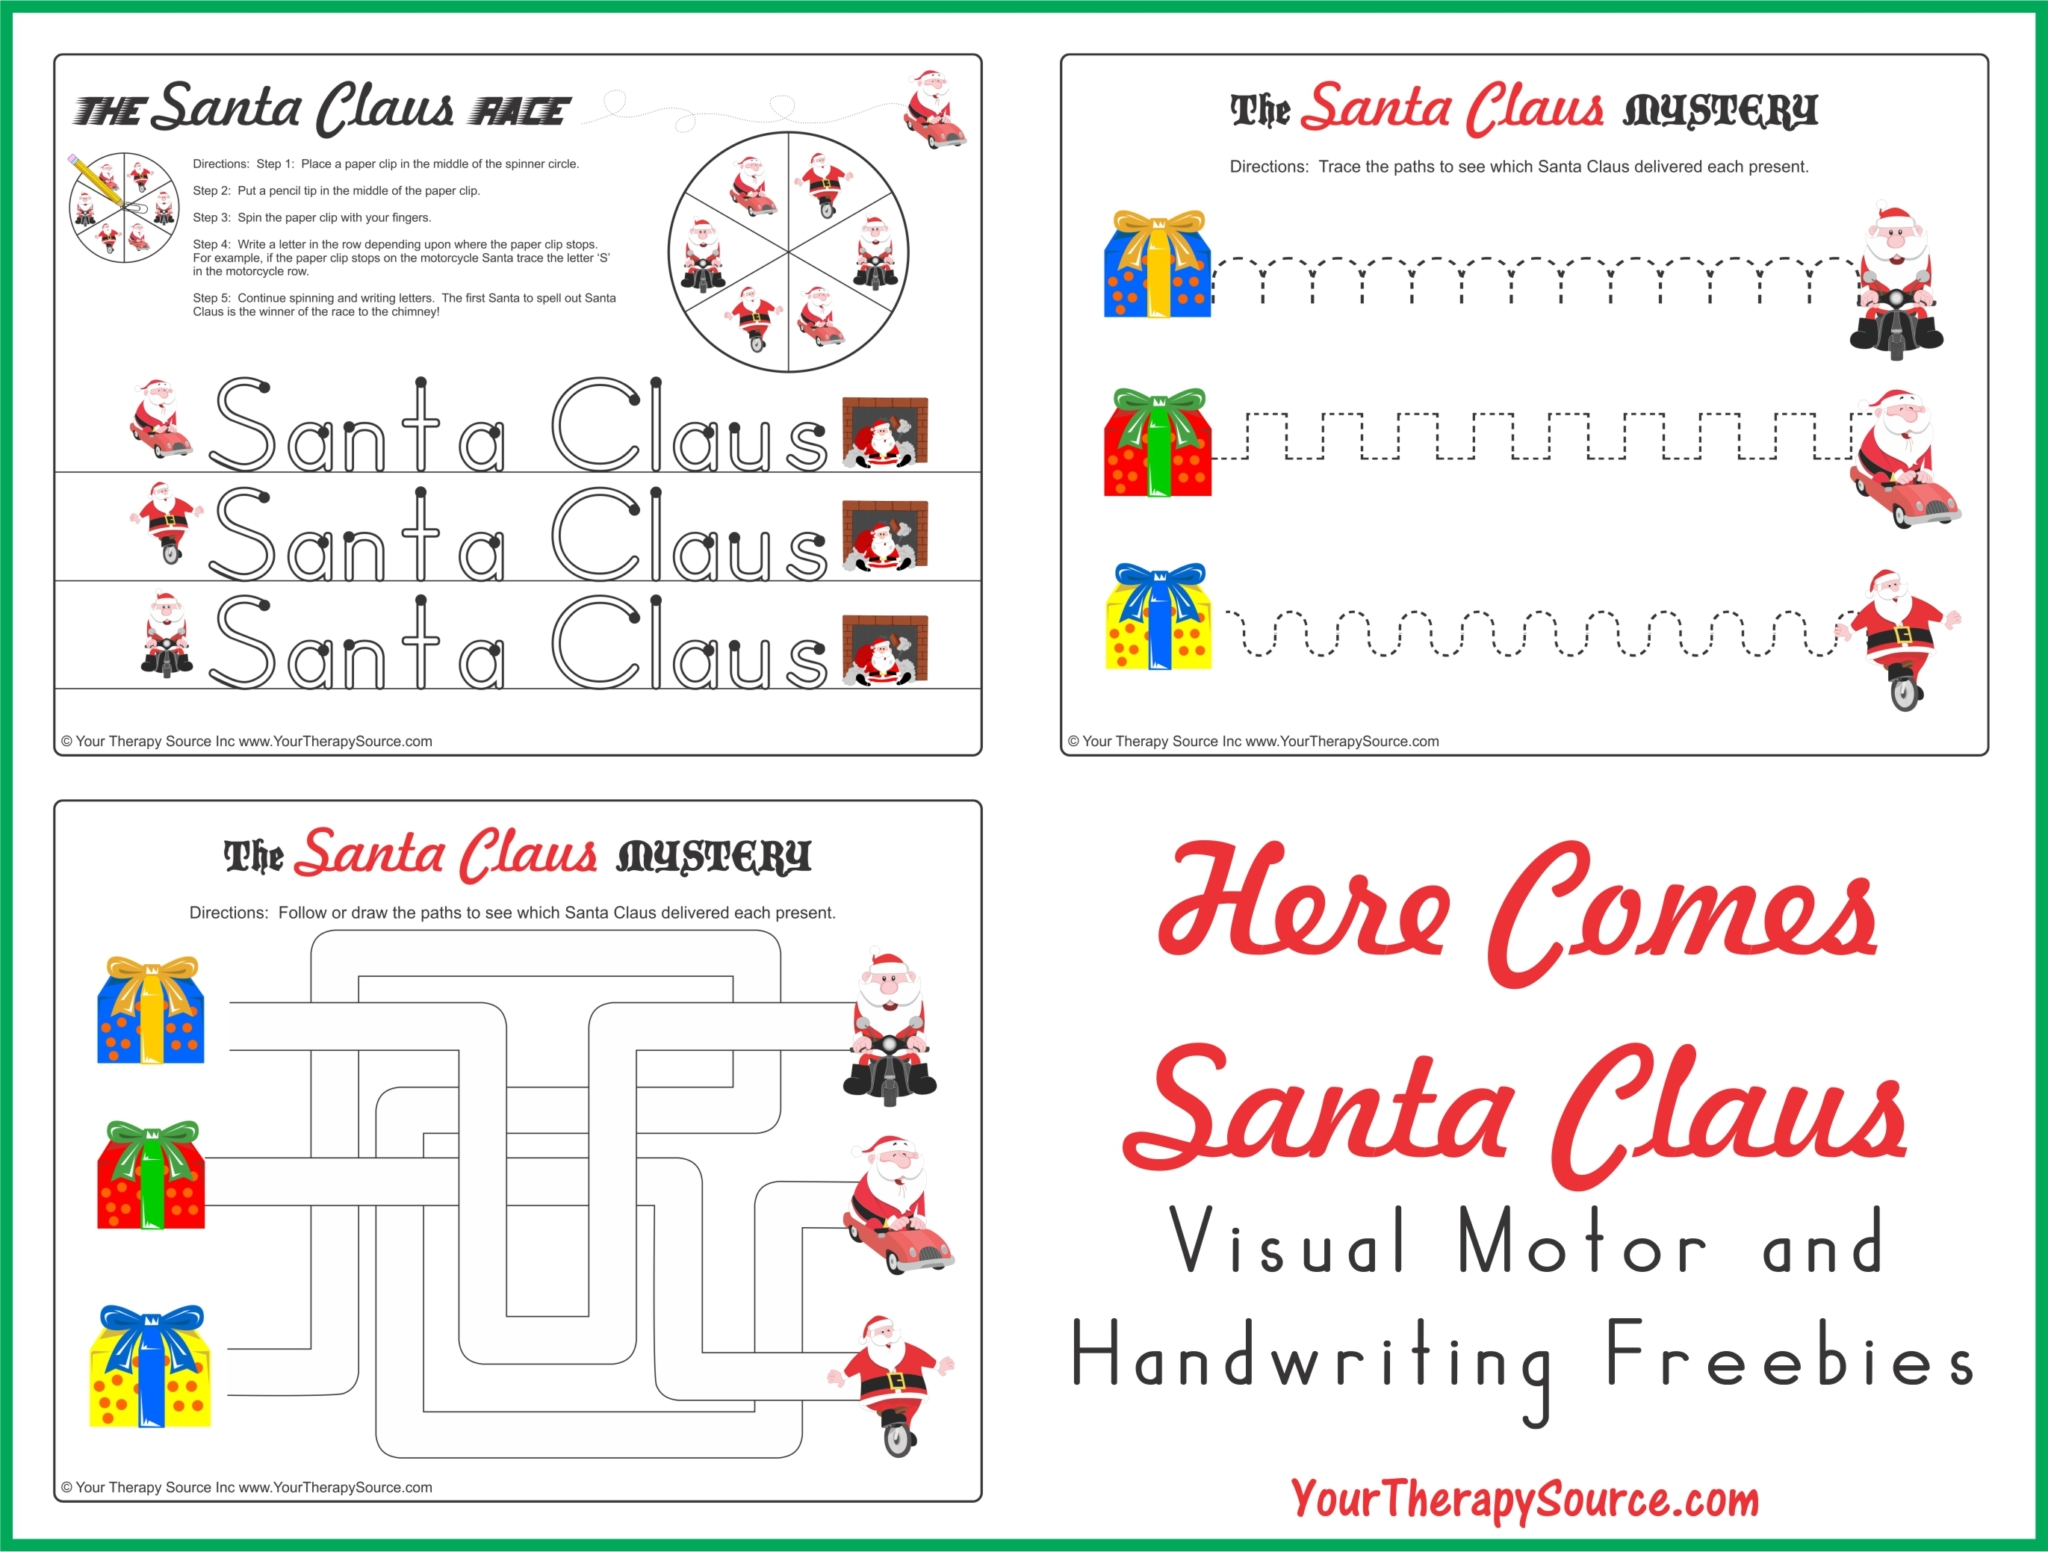 Santa Claus Visual Motor and Handwriting Activity from www.YourTherapySource.com